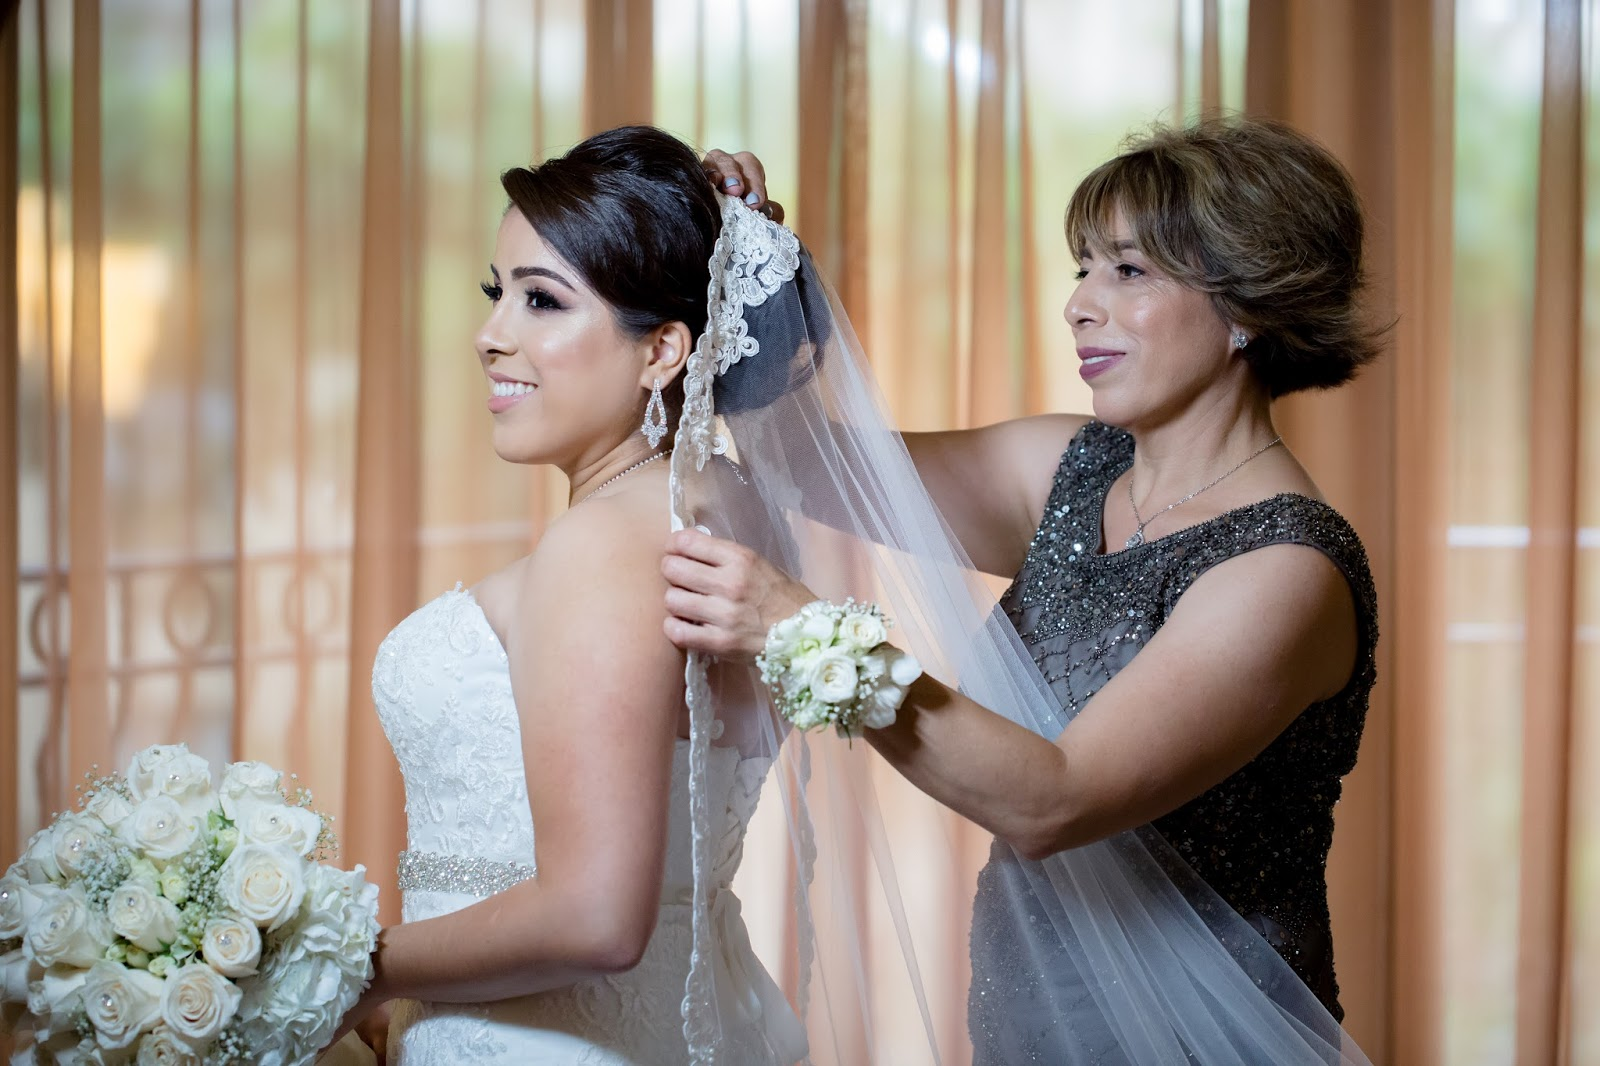 Mother of the Bride Helps Bride With Veil